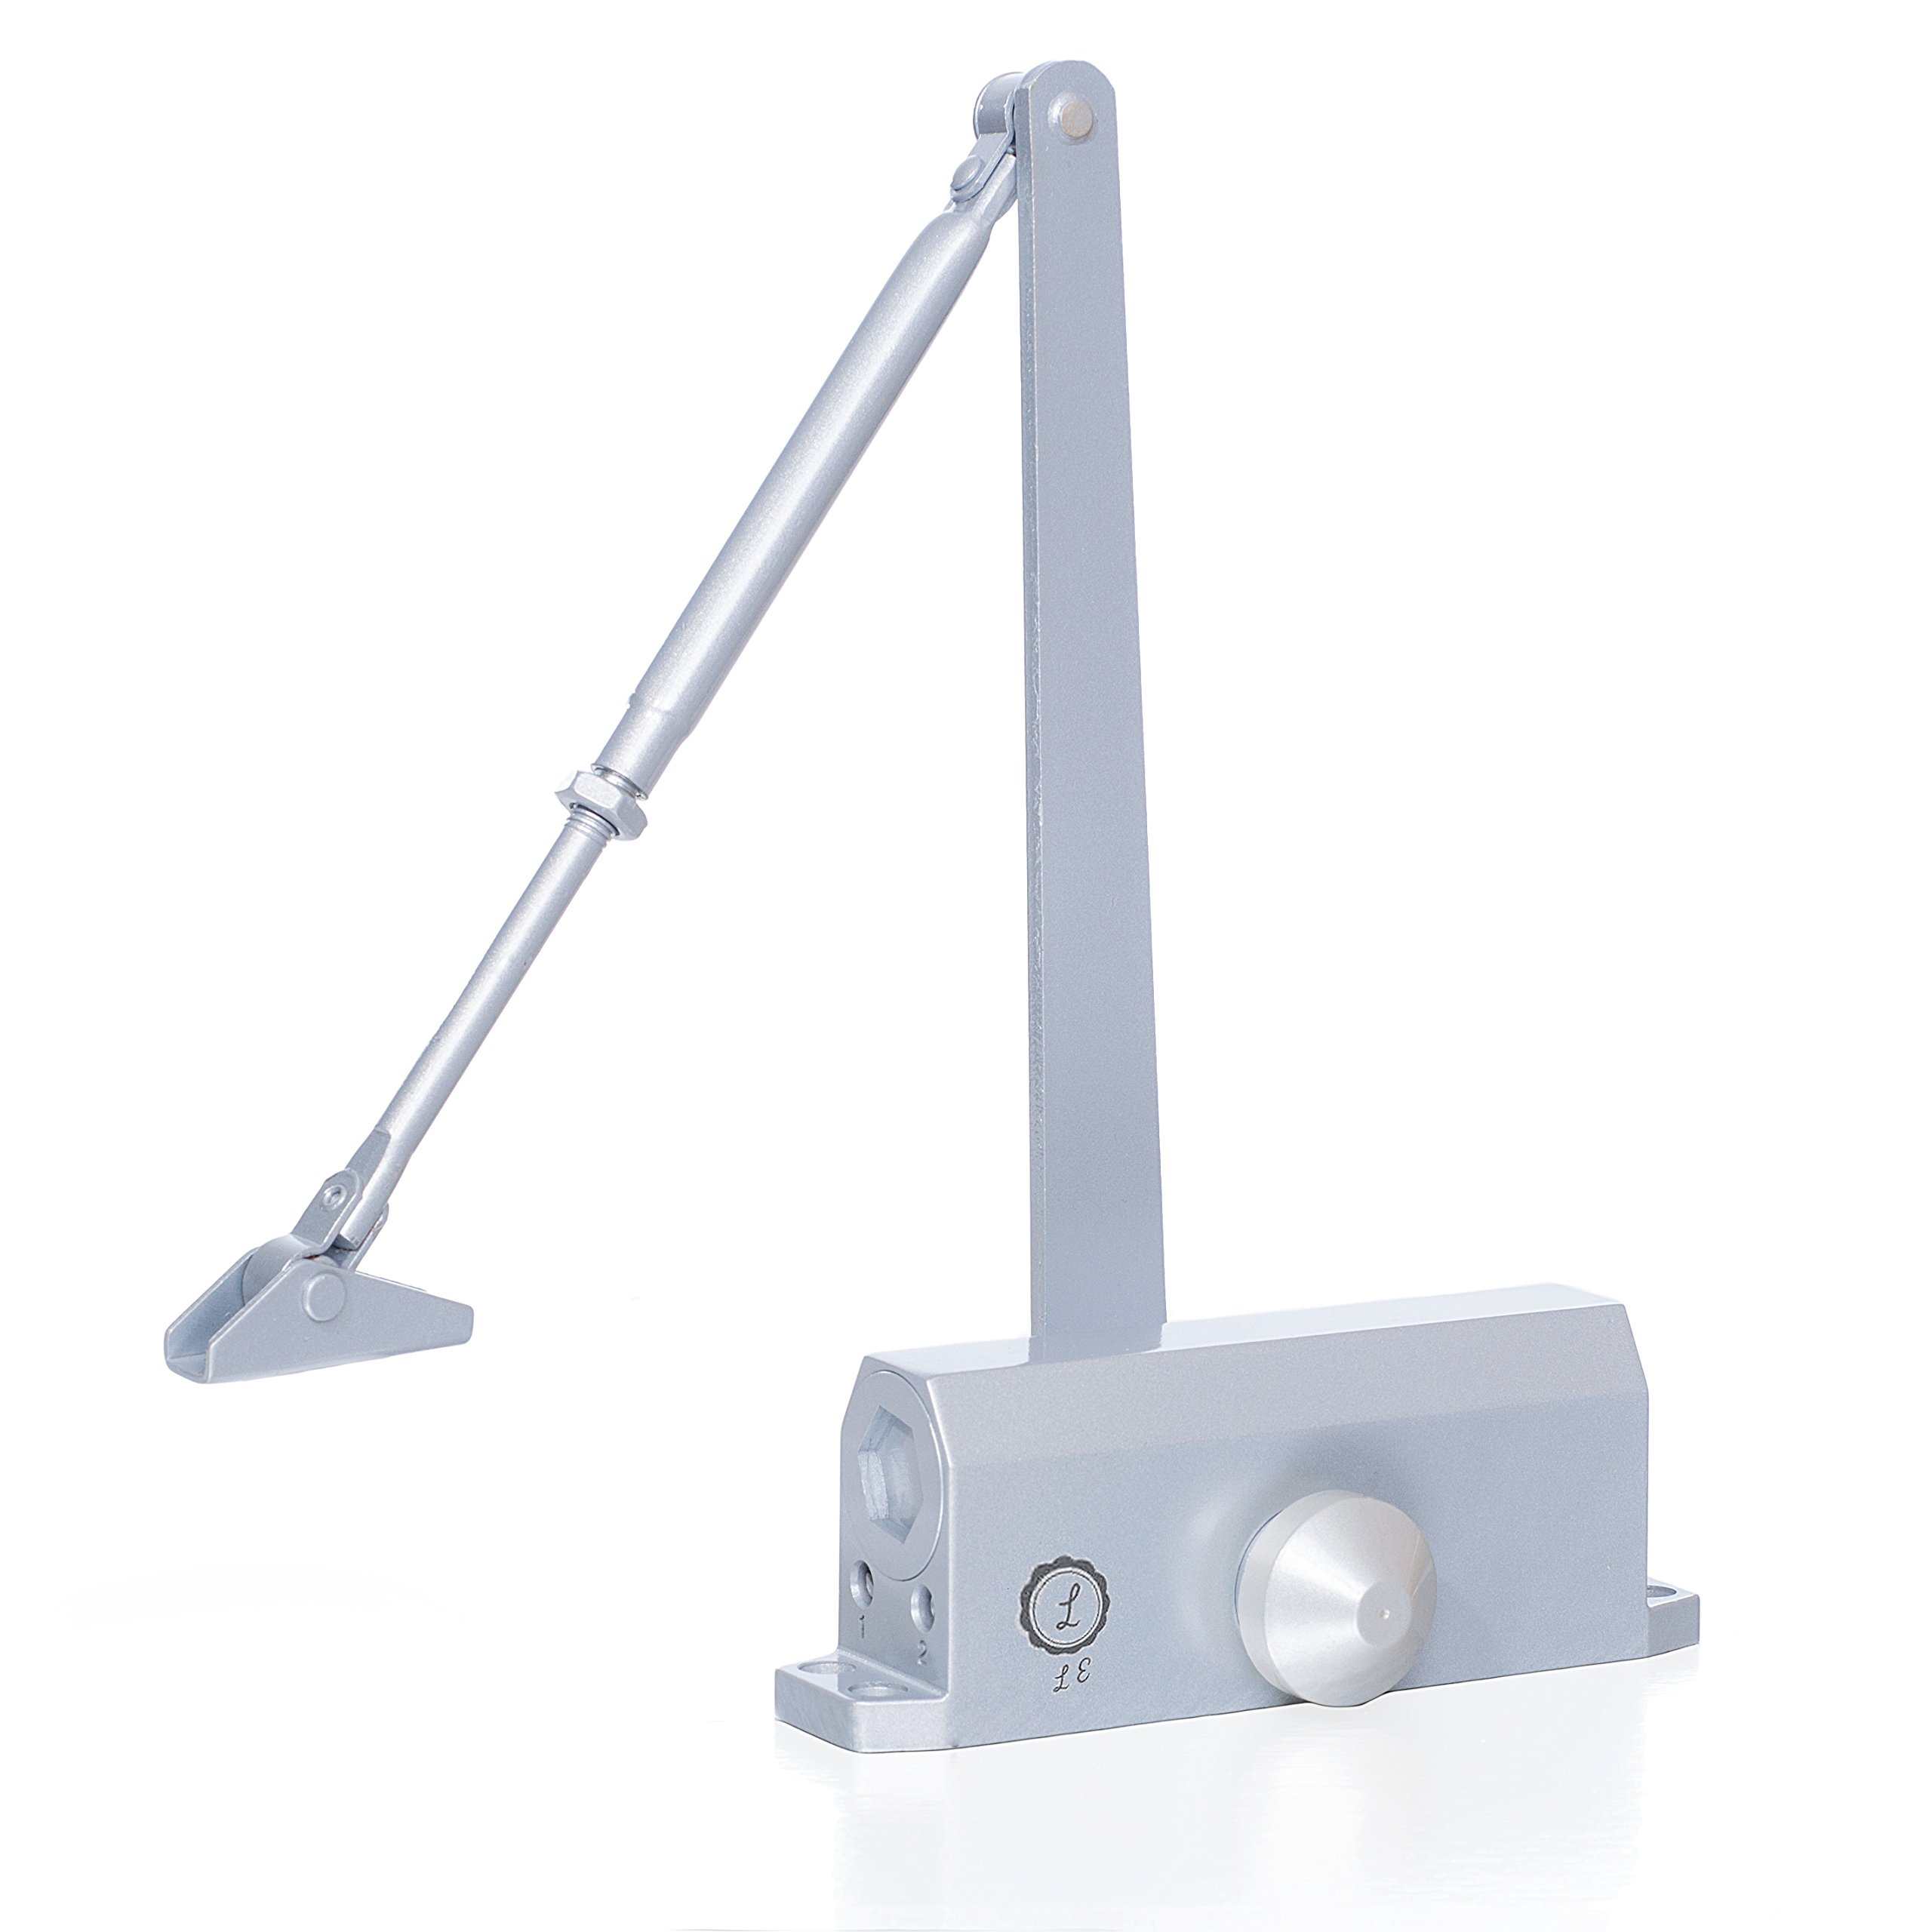 Commercial grade Door Closer, Heavy Duty aluminum automatic door closer, Hydraulic Arm, Non-handed -slowly closes- Variable latch speeds. Size 4 spring for doors up to 150 lbs by Life Essentials!